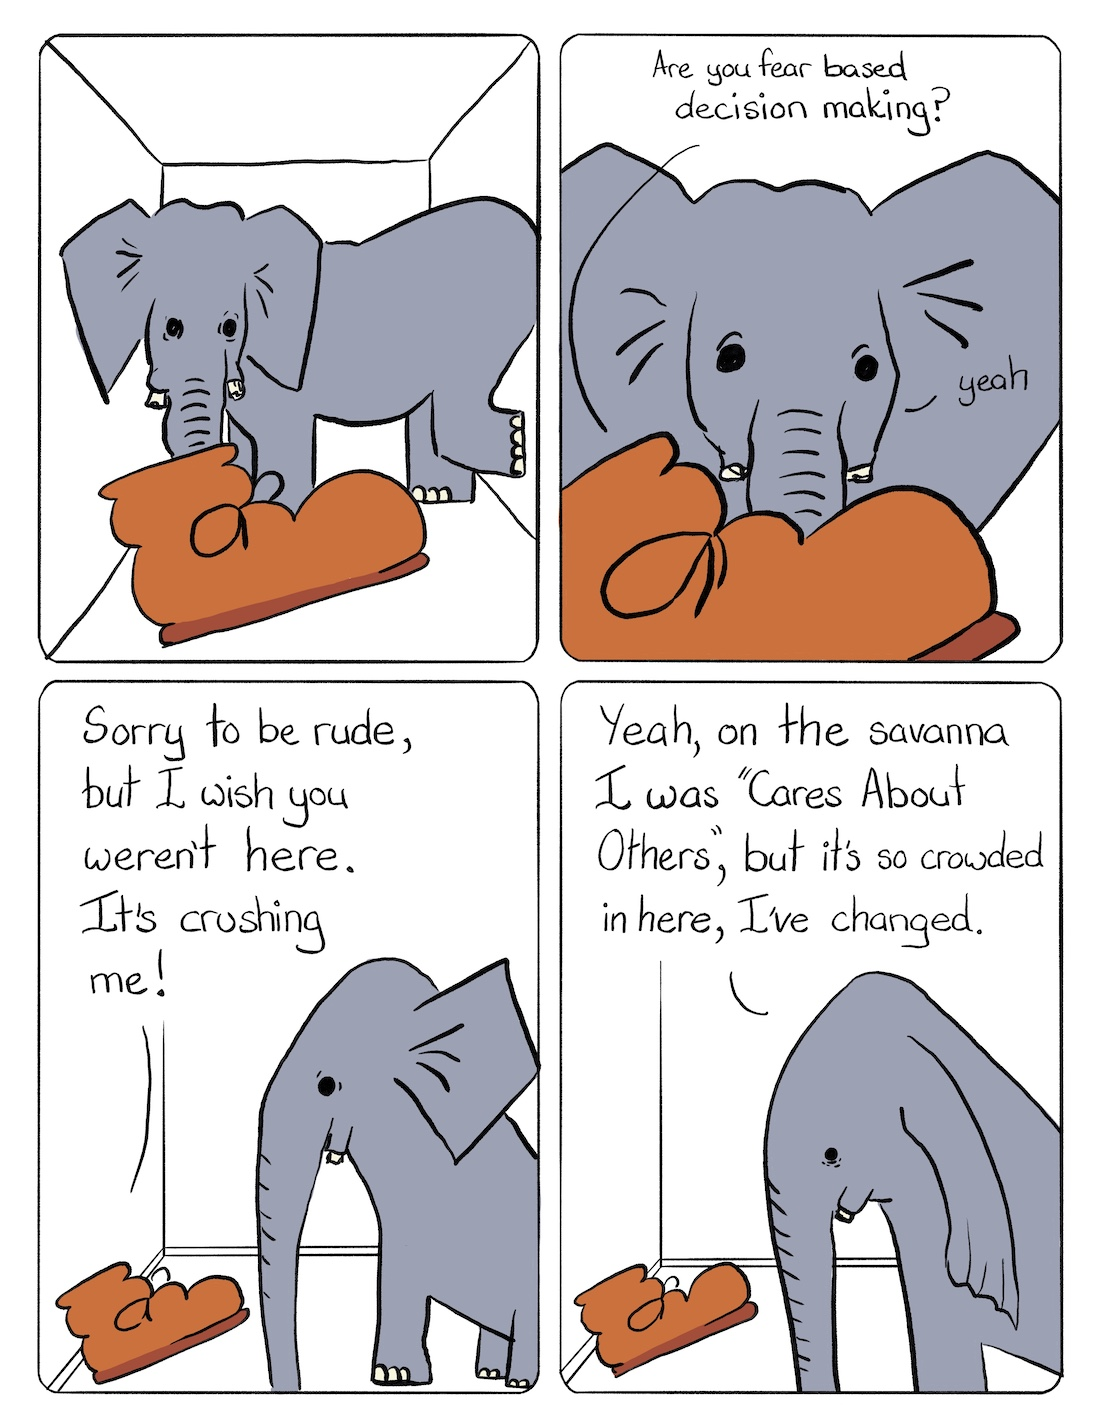 """Elephant in the Room Comic Transcript Boot is in a small cramped room with a grey elephant that looks uncomfortably wedged in. Boot: Are you Fear Based Decision Making? Elephant: Yeah. Boot: Sorry to be rude, but I wish you weren't here. It's crushing me. Elephant: Yeah, on the savanna I was """"Cares About Others,"""" but it's so crowded here, I've changed."""